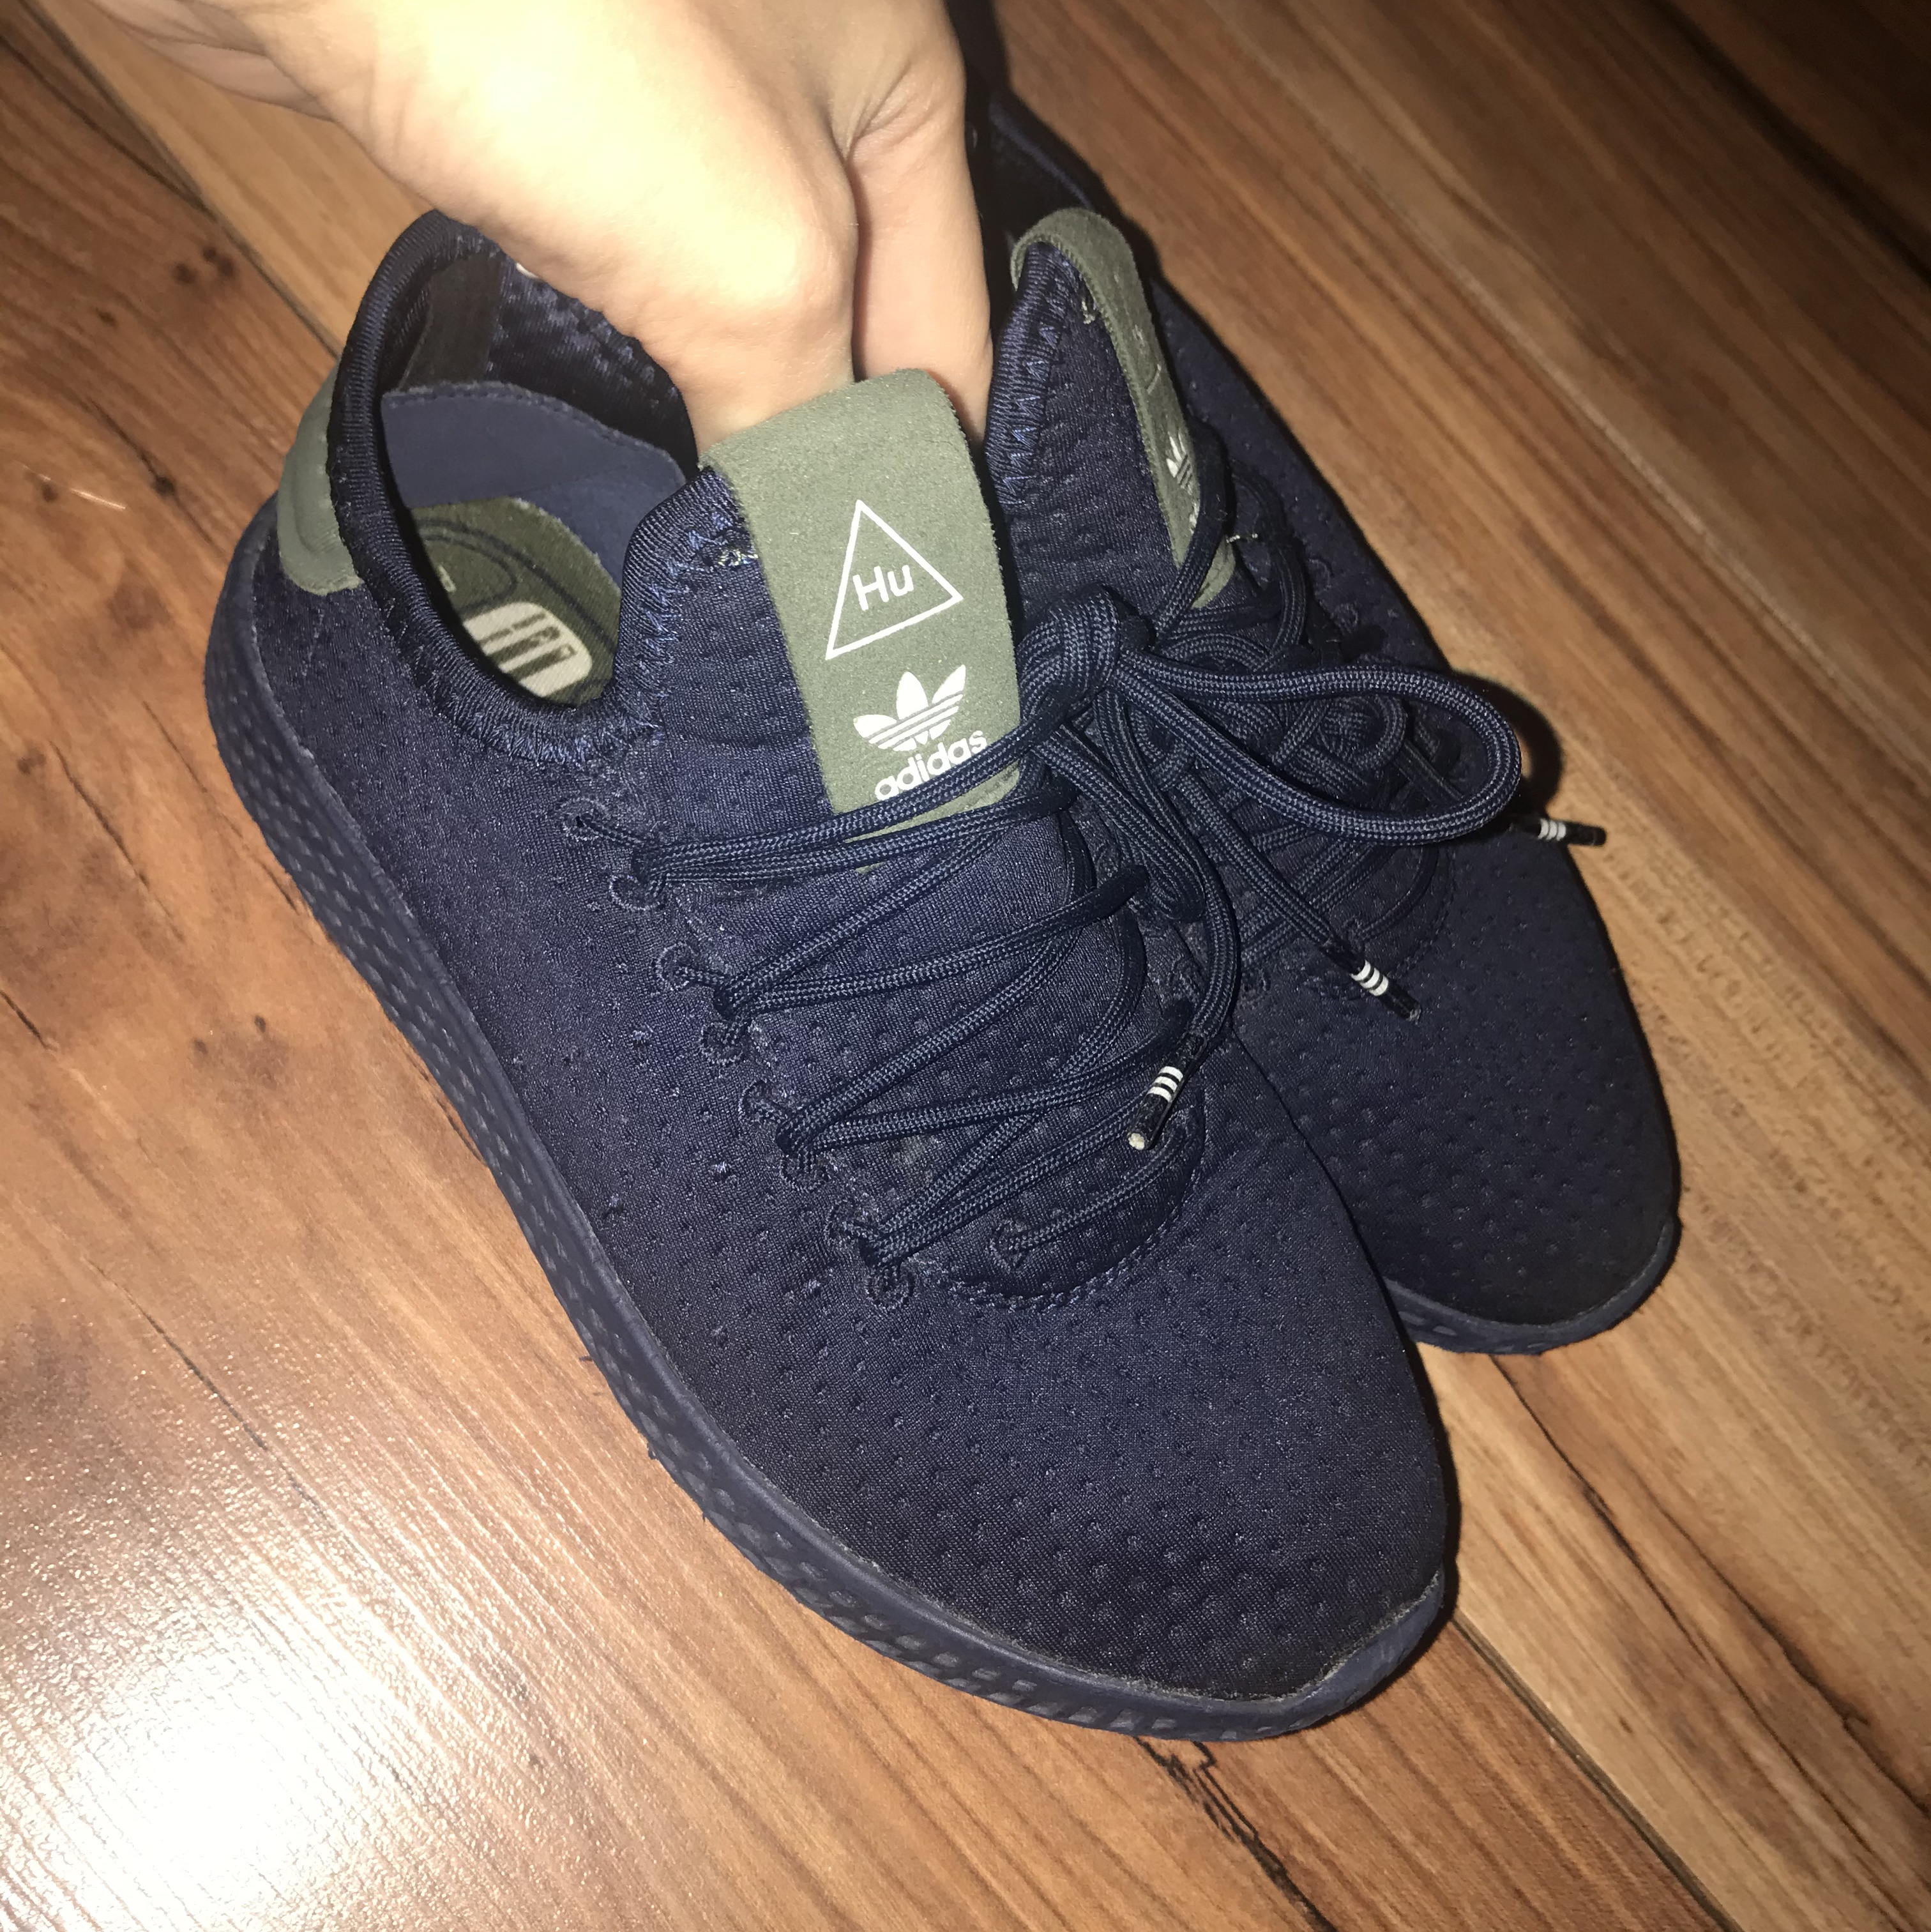 Adidas Kids Trainers, size 13.5. Paid